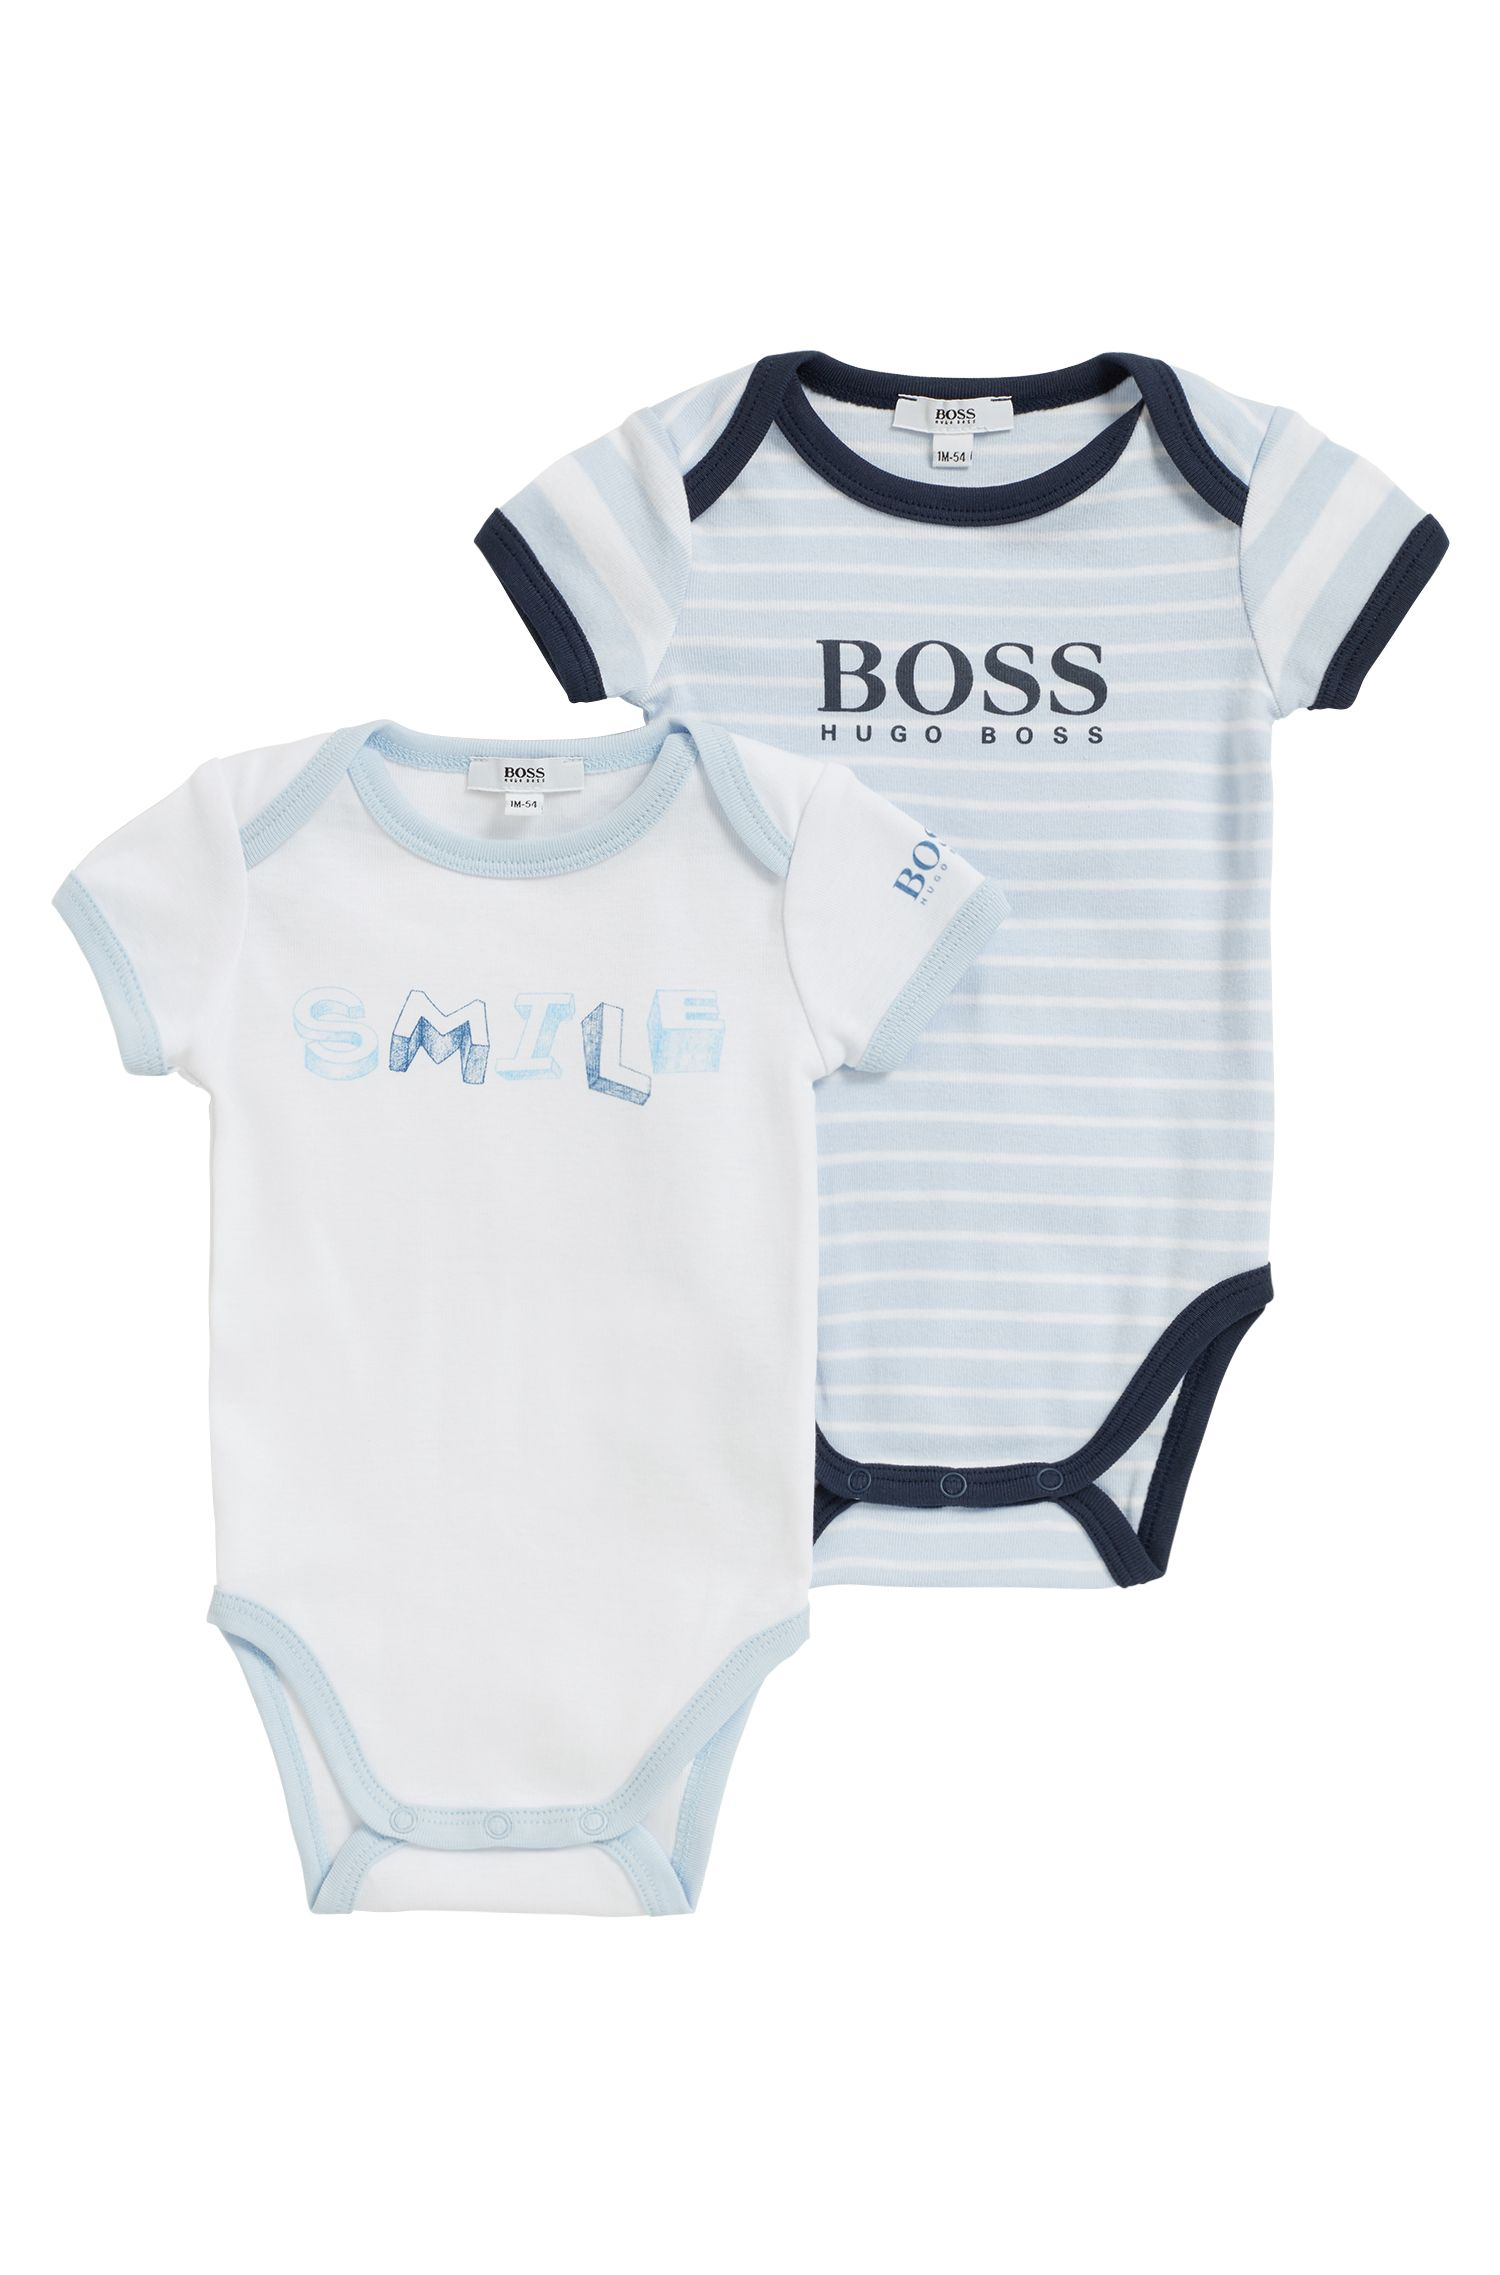 Two pack of baby bodysuits in cotton